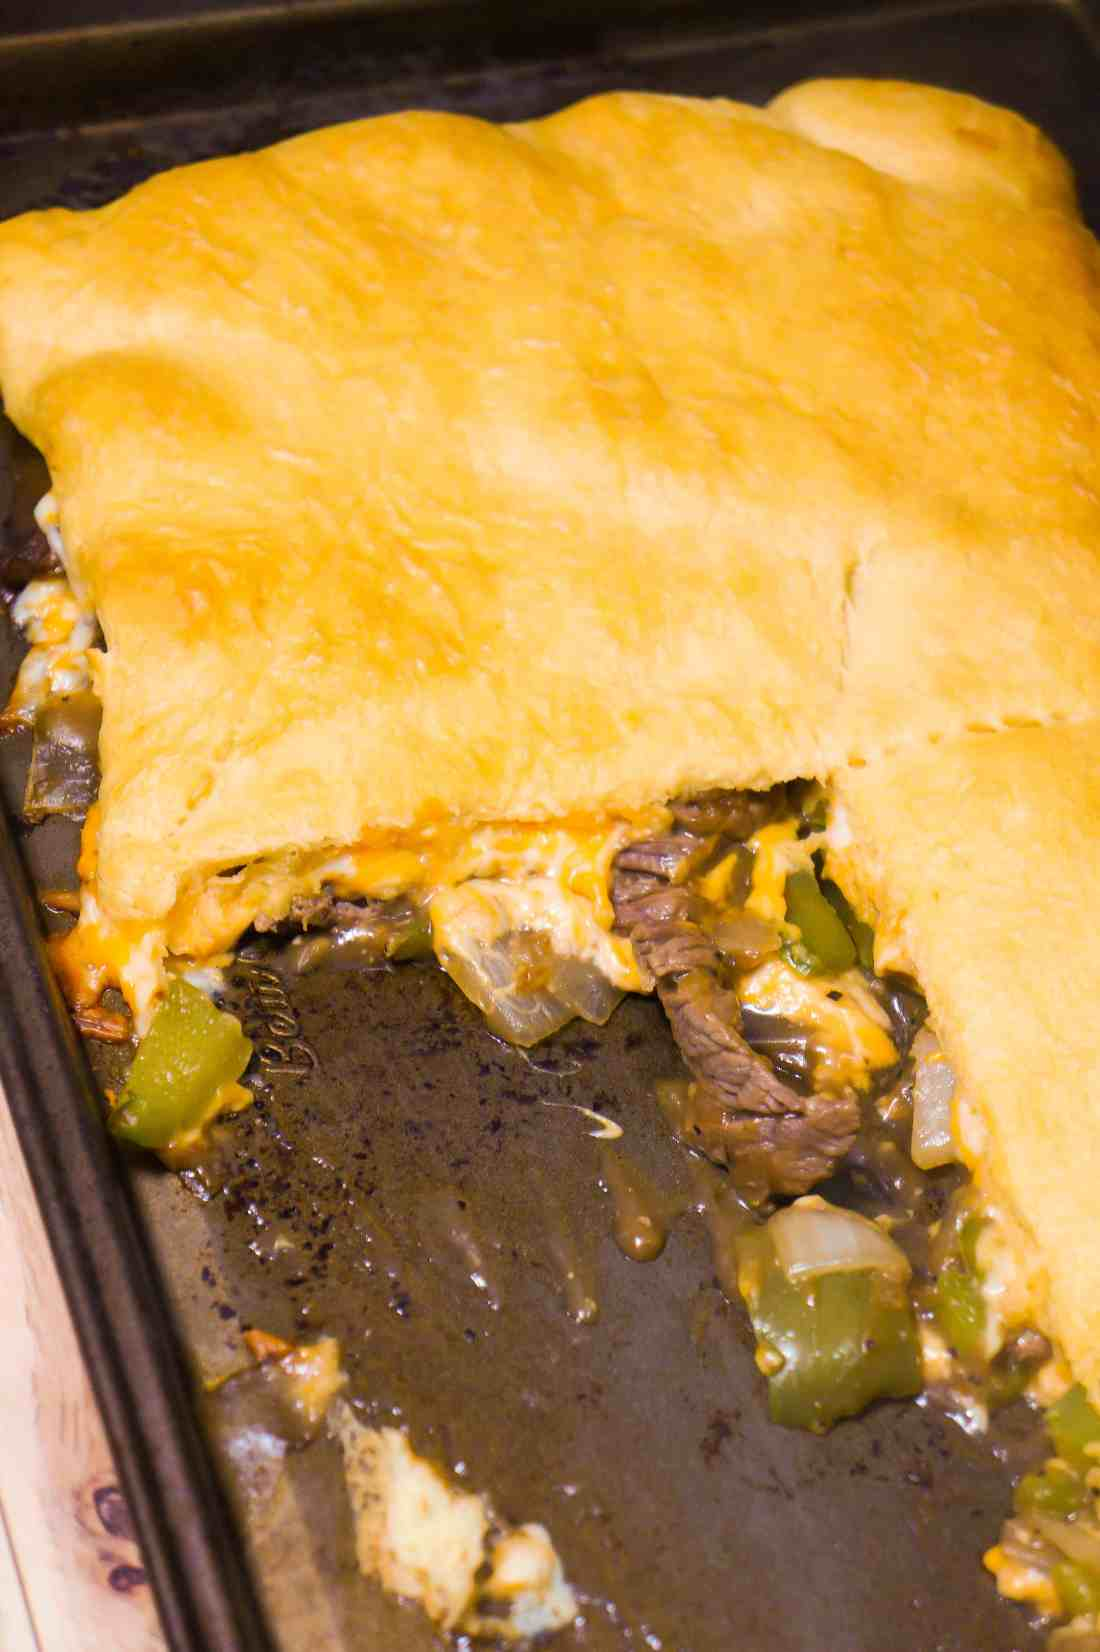 Philly Cheese Steak Crescent bake is an easy beef dinner recipe using Pillsbury crescent roll dough.